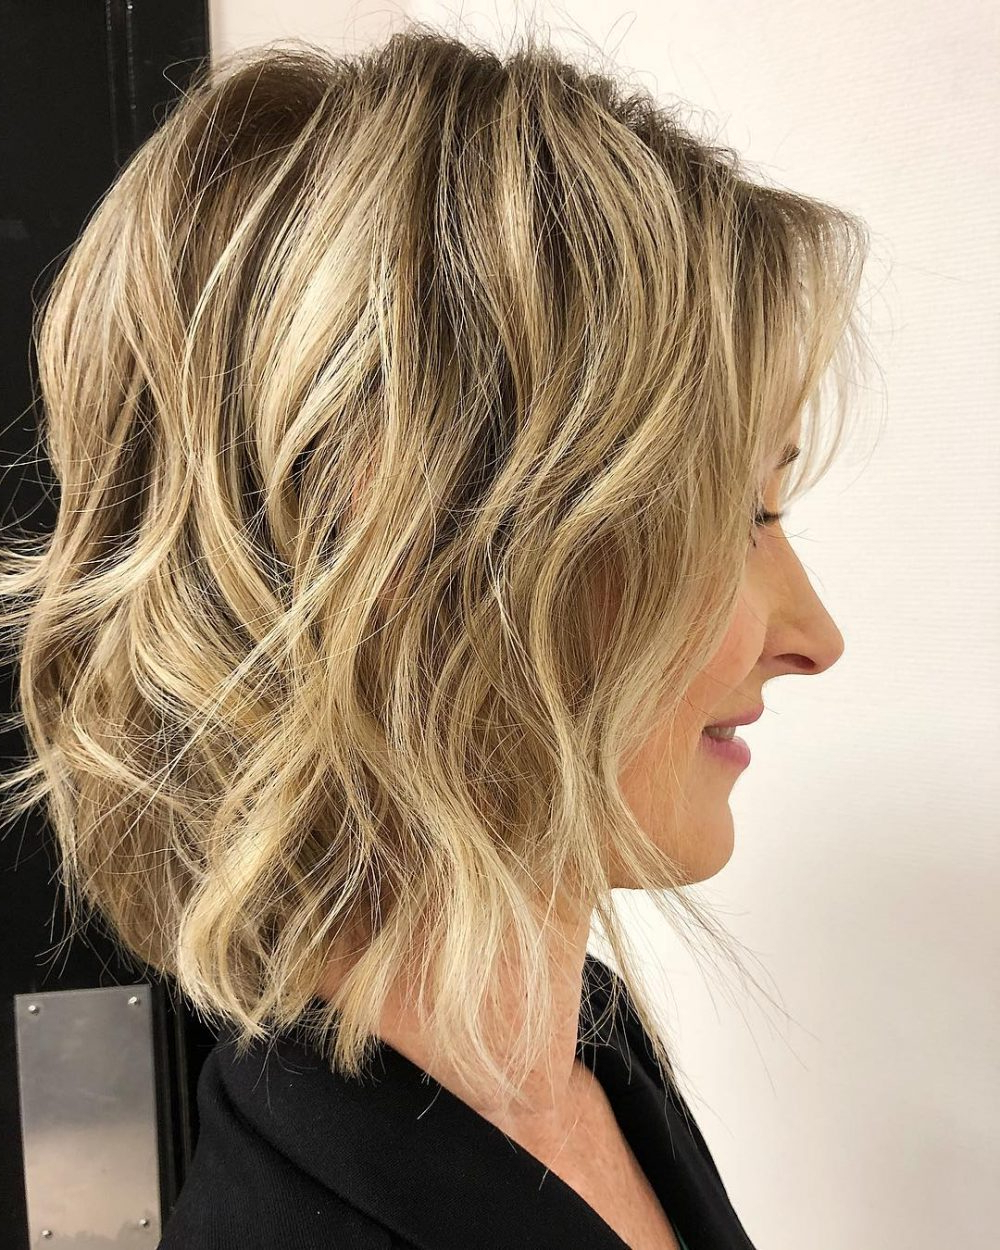 43 Perfect Short Hairstyles For Fine Hair In 2018 Pertaining To Short Hairstyles For Fine Thin Straight Hair (View 6 of 25)